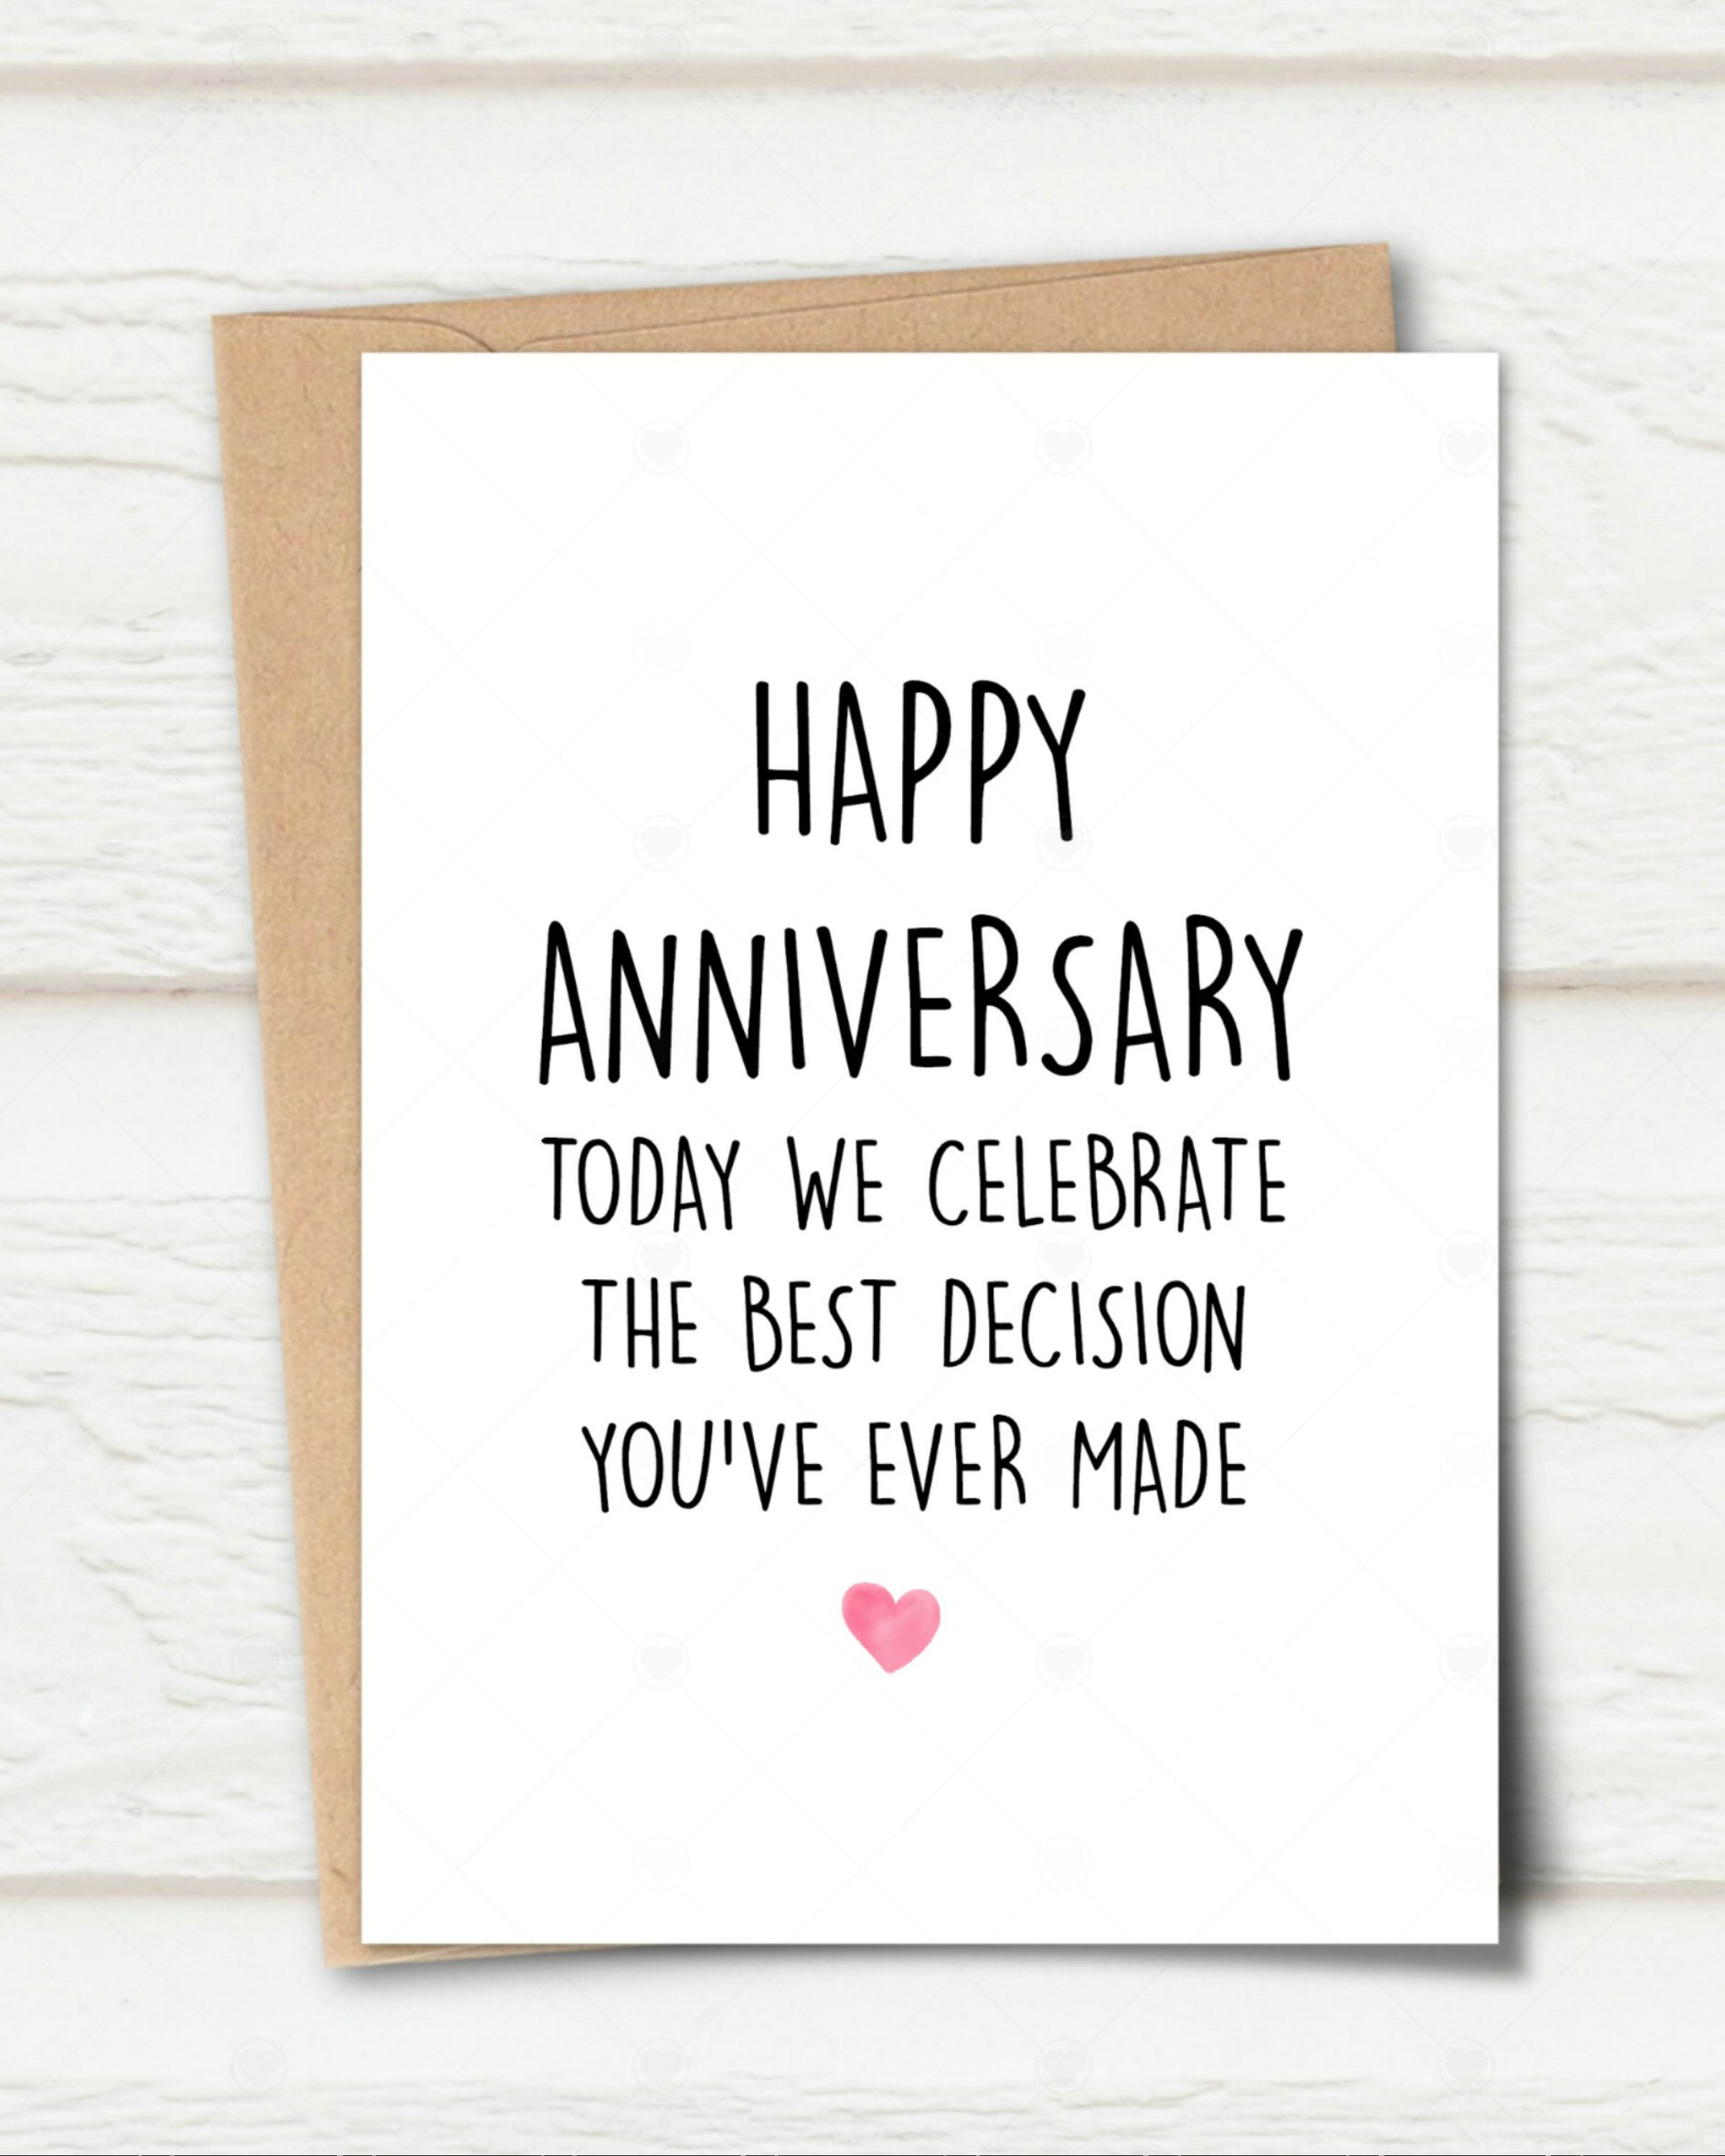 Printable Anniversary Card Best Decision You Ever Made Card Funny Anniversary Card Funny Anniversary Cards Sarcastic Anniversary Card Printable Anniversary Cards Funny Anniversary Cards Anniversary Cards